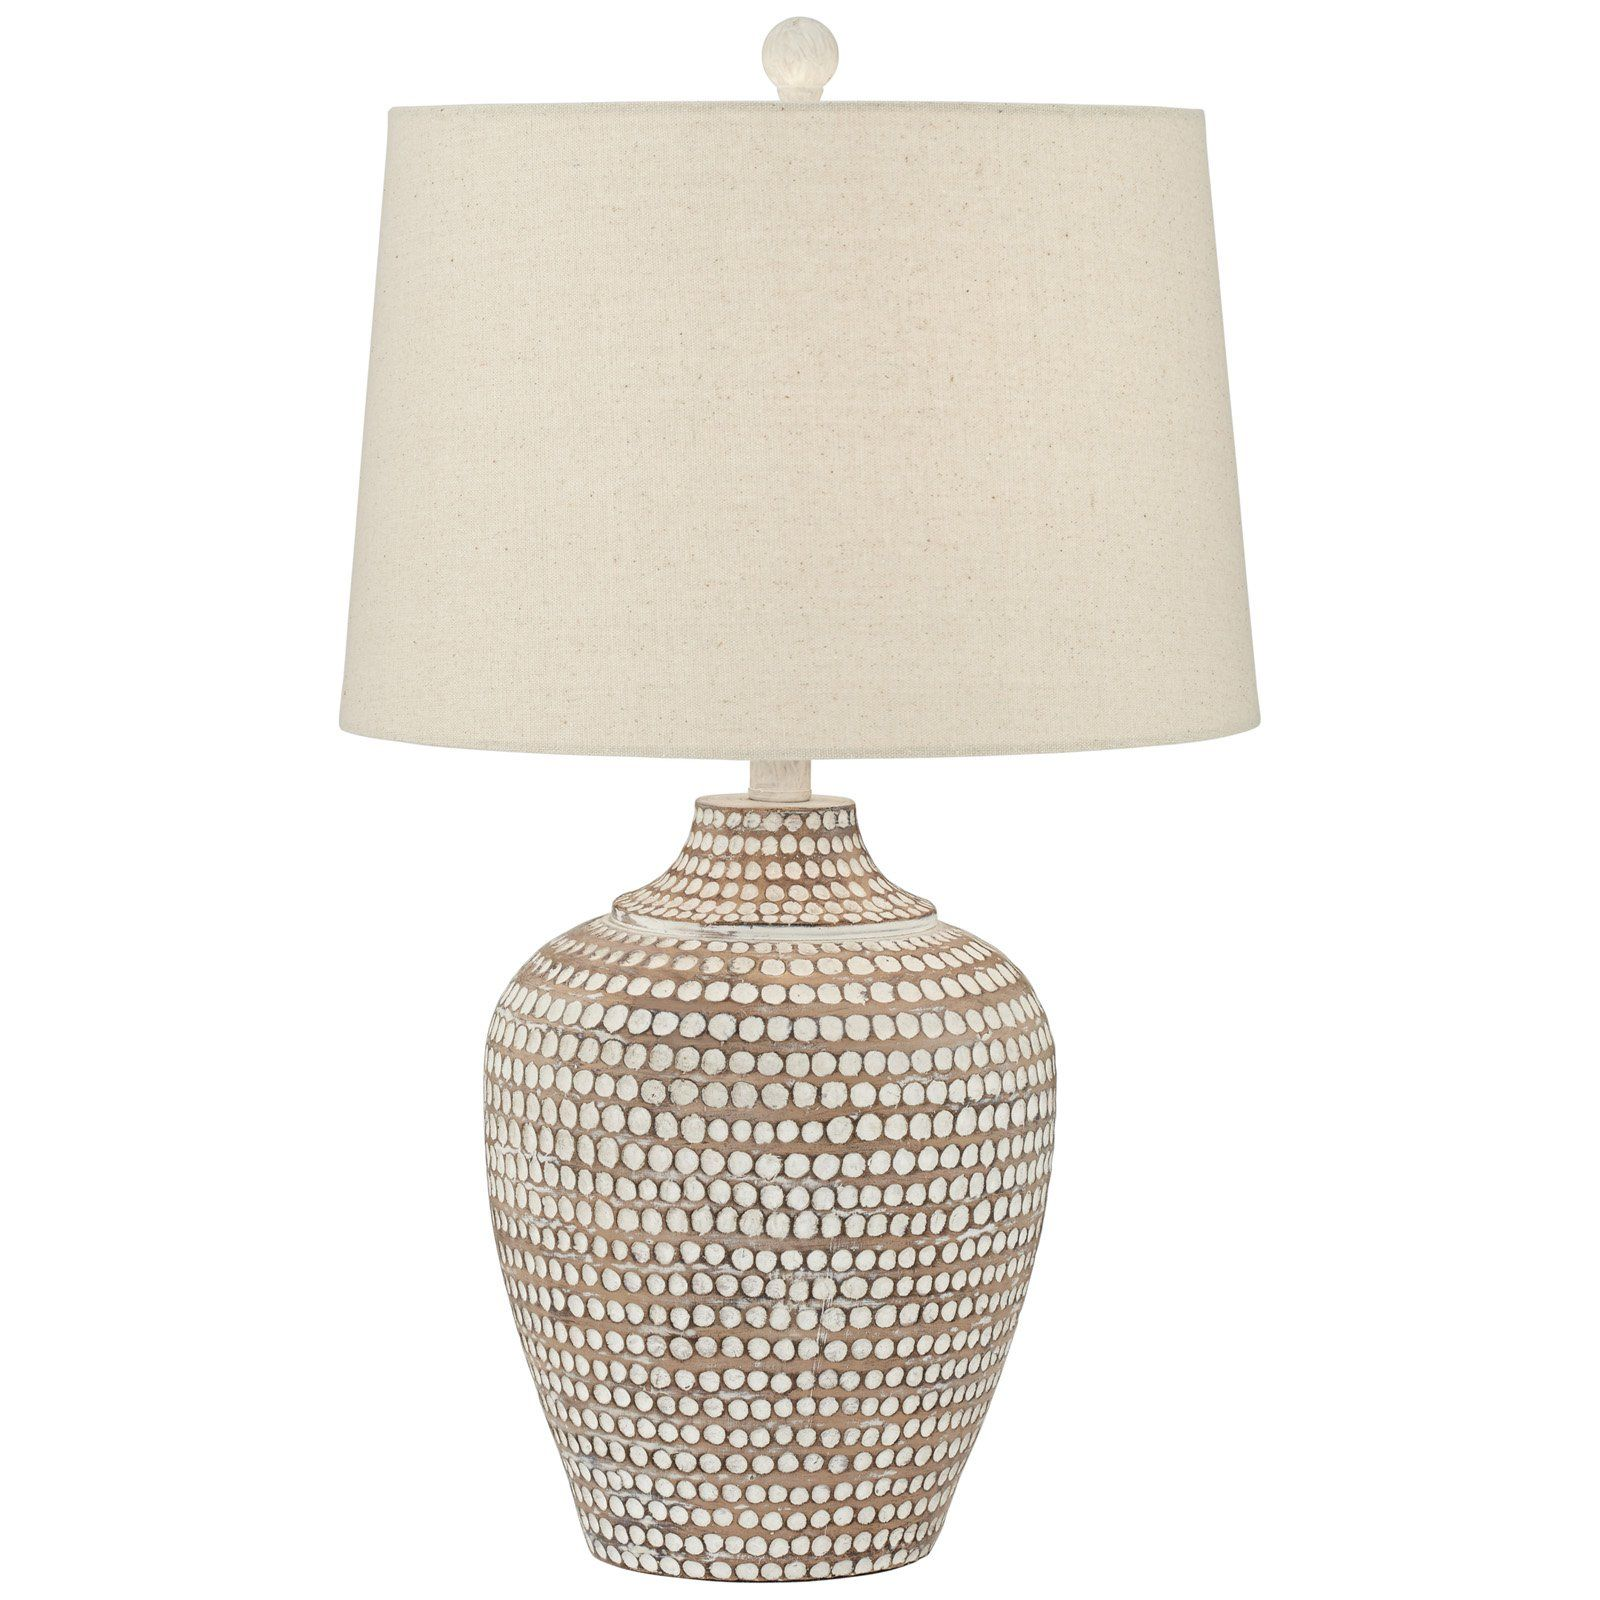 Pacific coast lighting alese table lamp from hayneedle pacific coast lighting alese table lamp from hayneedle aloadofball Gallery